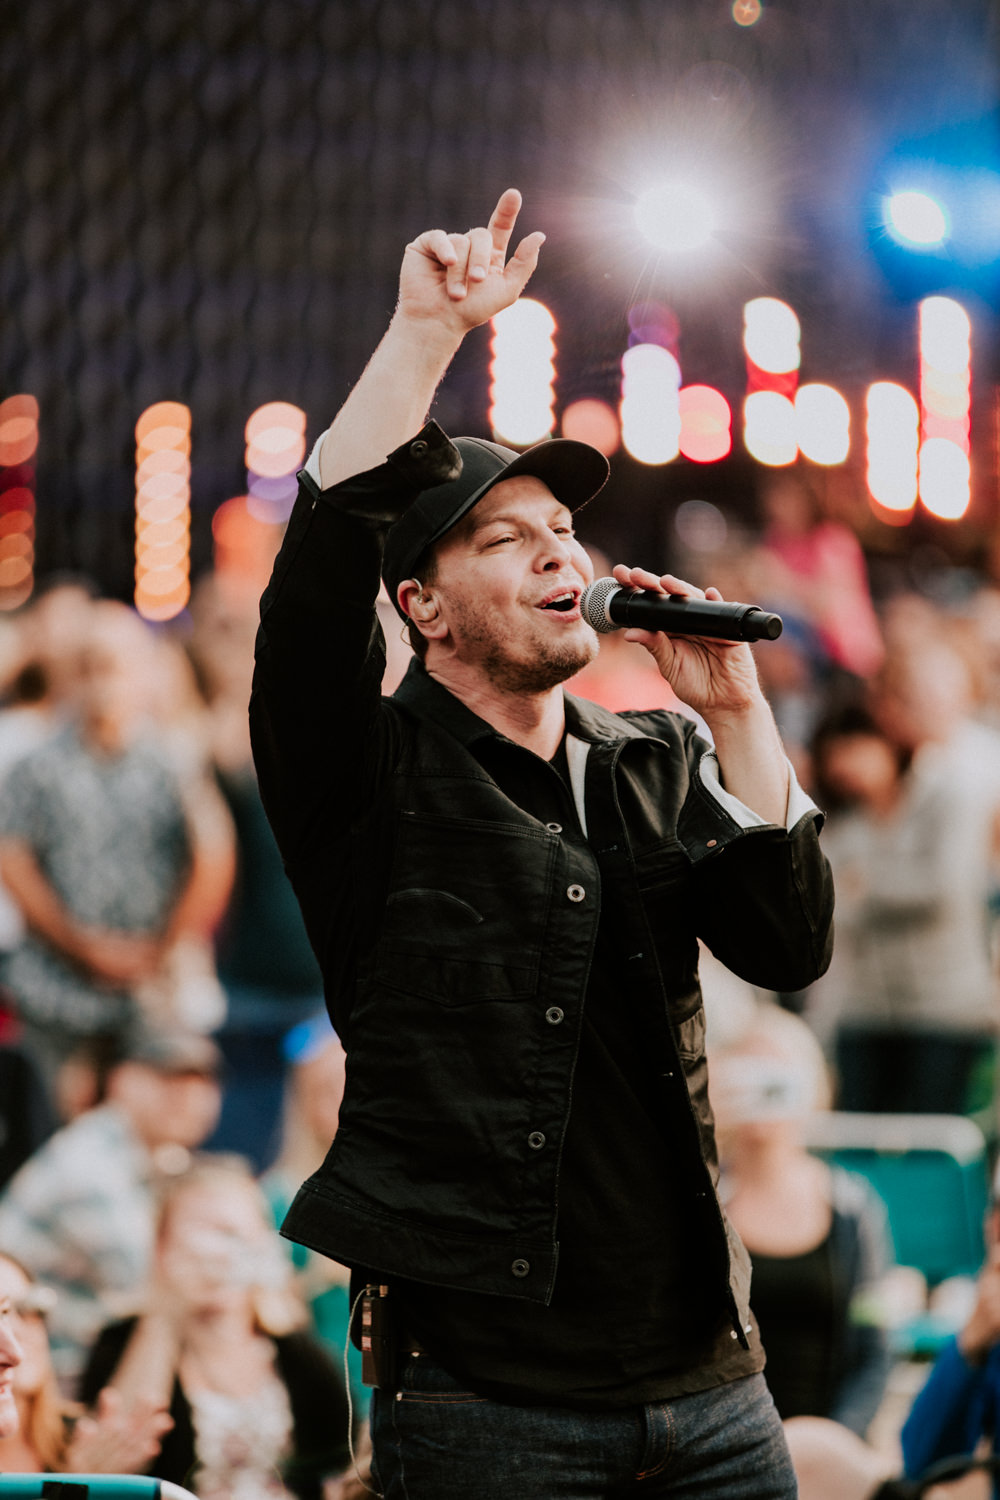 gavin-degraw-singing-2018-tour-AnnaLeeMedia